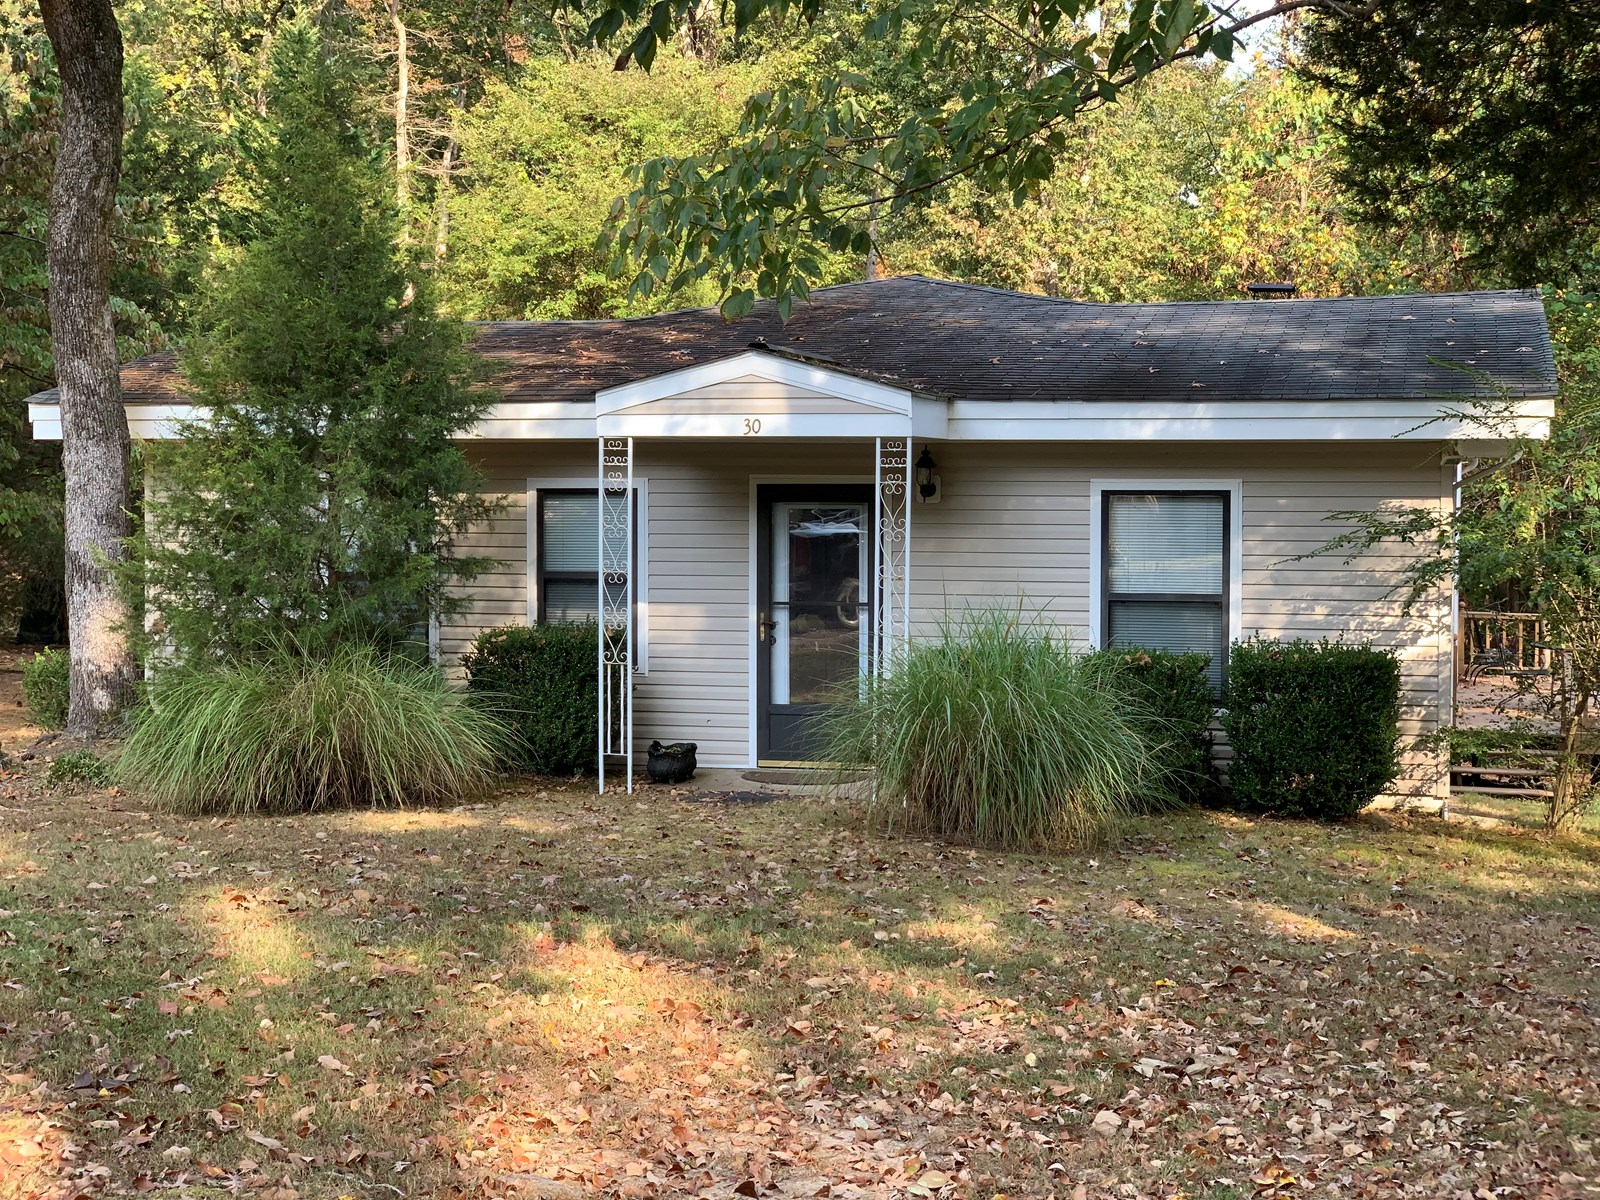 LAKE FRONT HOME FOR SALE, CAMDEN, TENNESSEE, KY LAKE